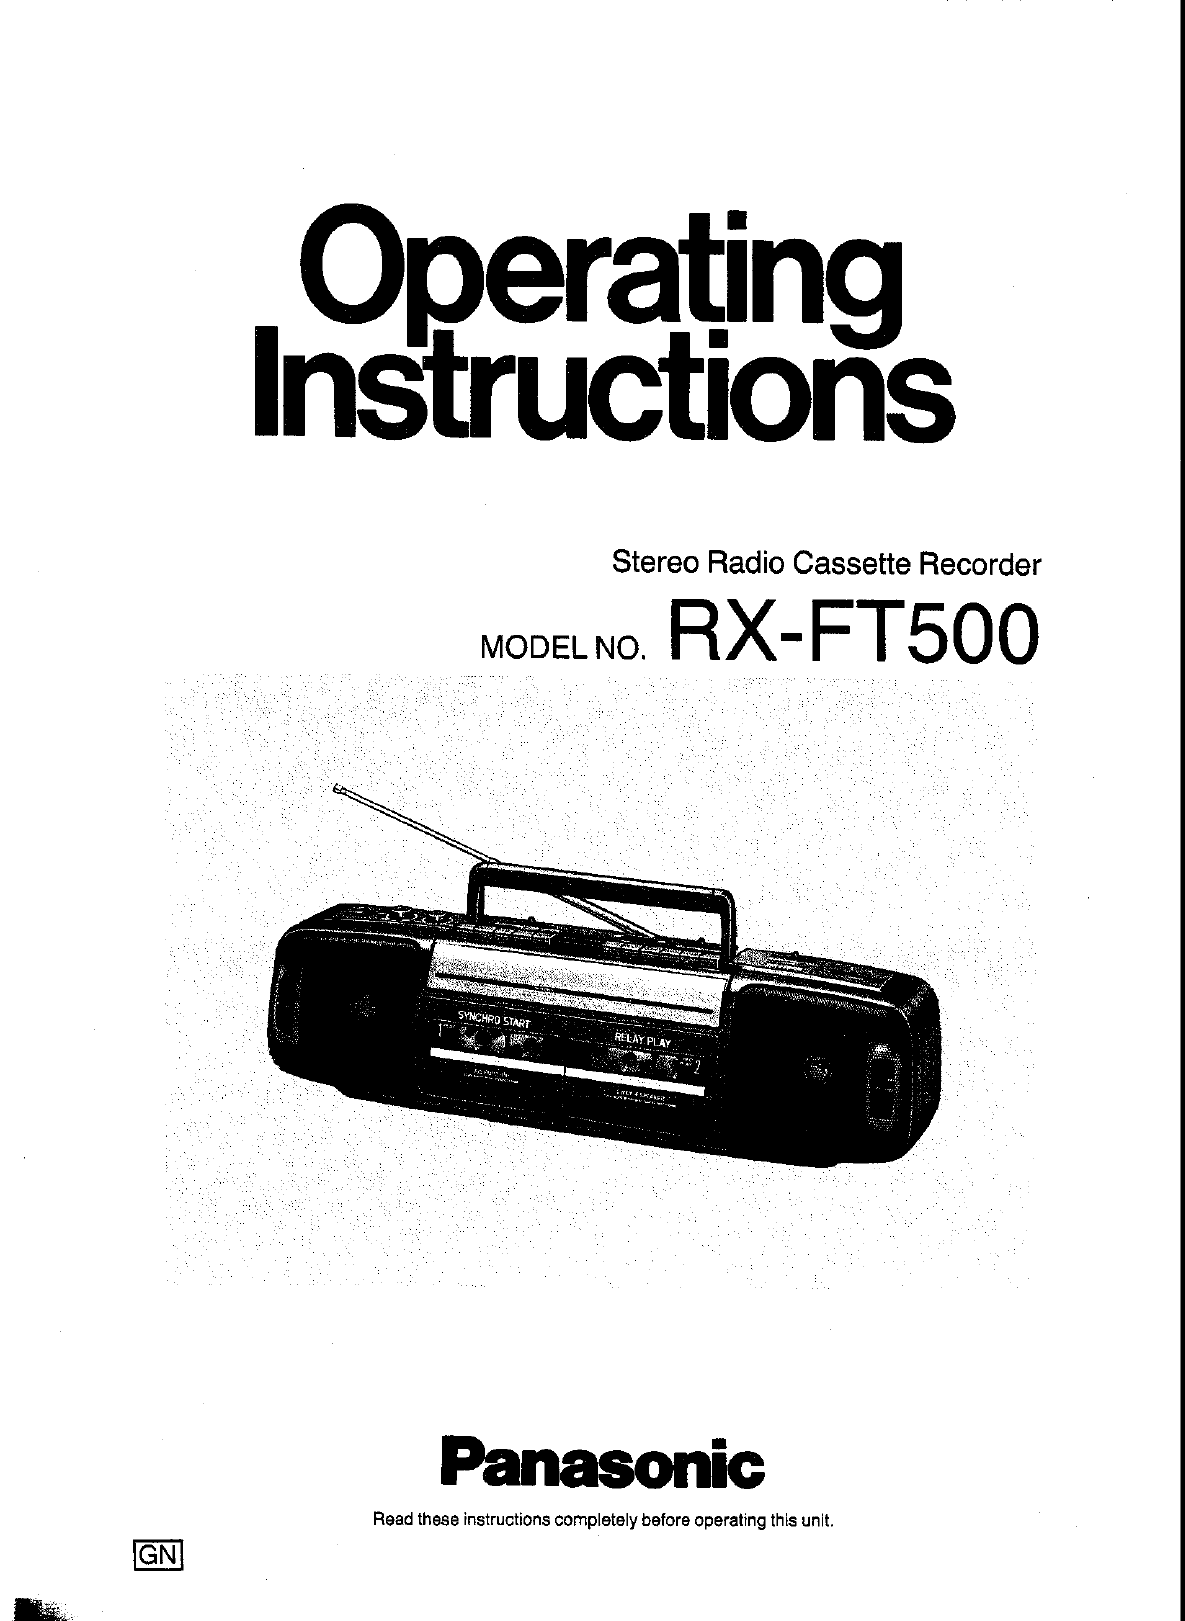 Panasonic Microcassette Recorder RX-FT500 User Guide